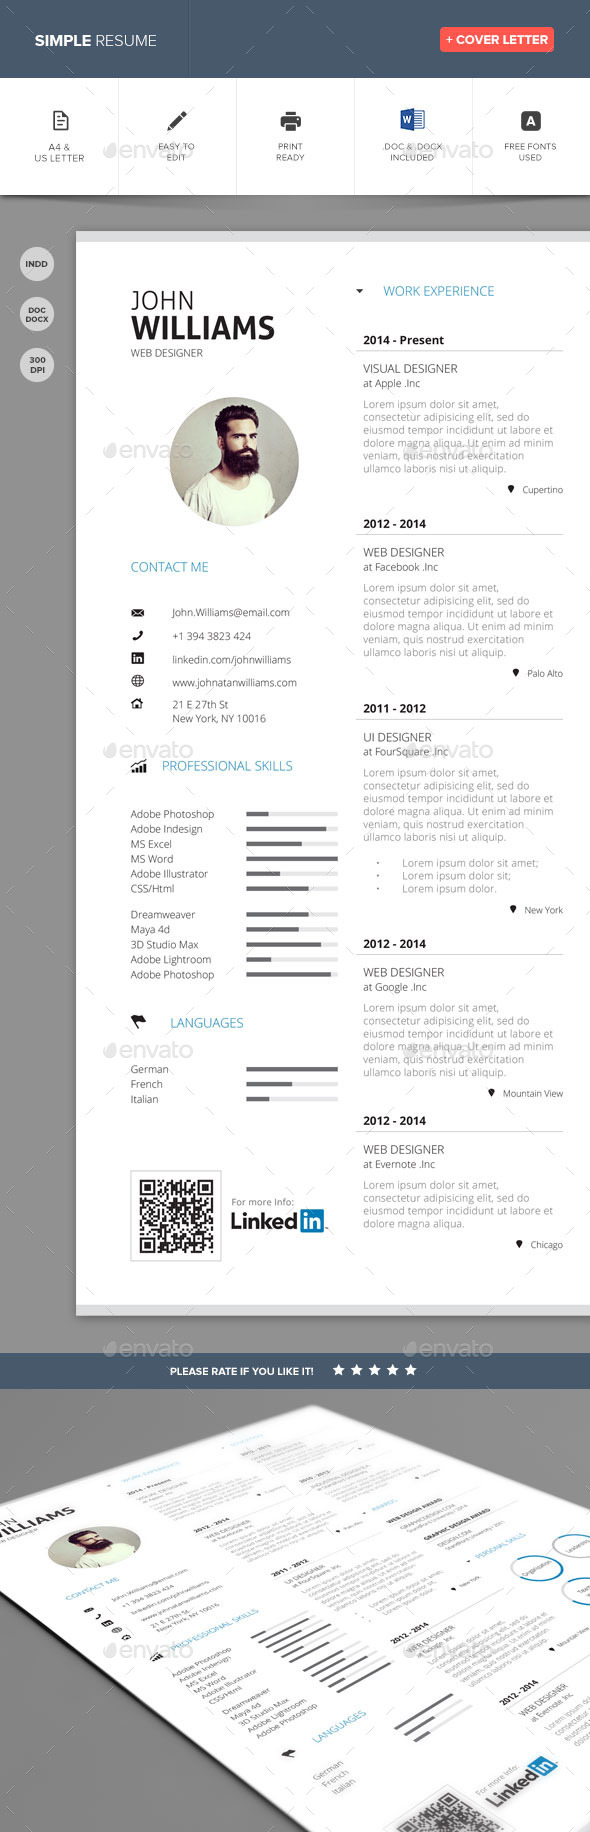 GraphicRiver Simple Resume Vol 2 10435829